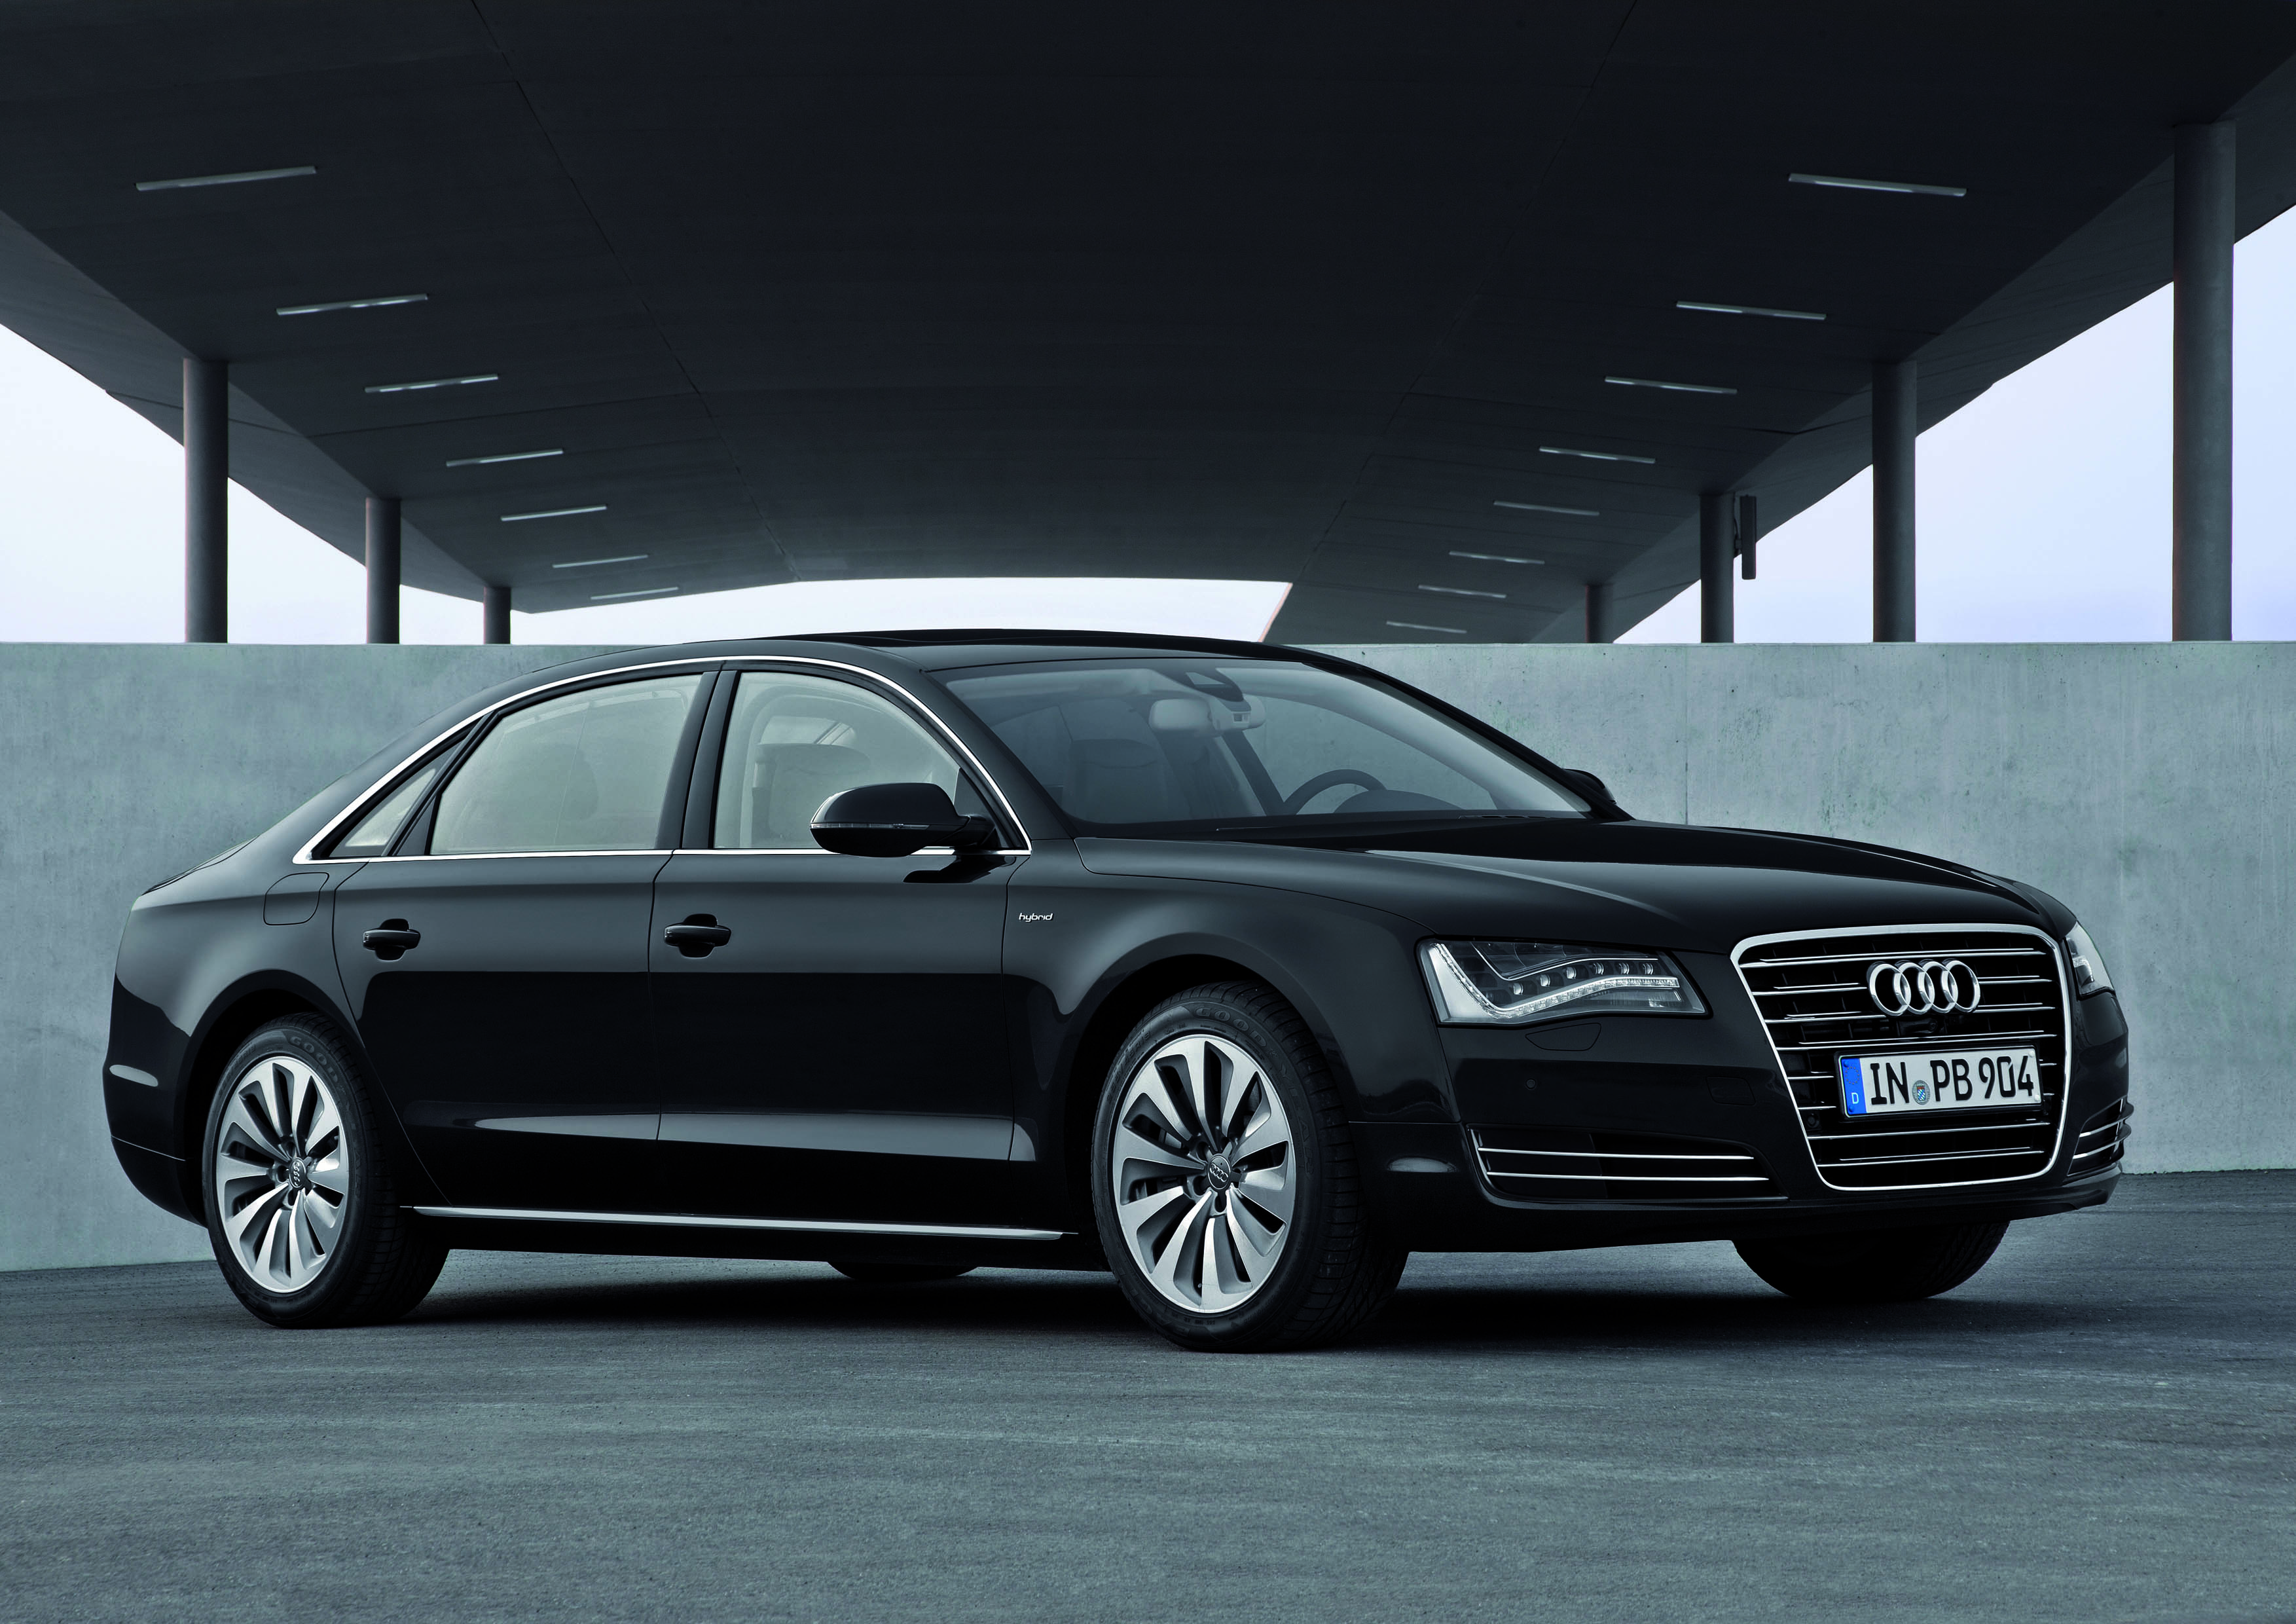 audi a8 pictures #14